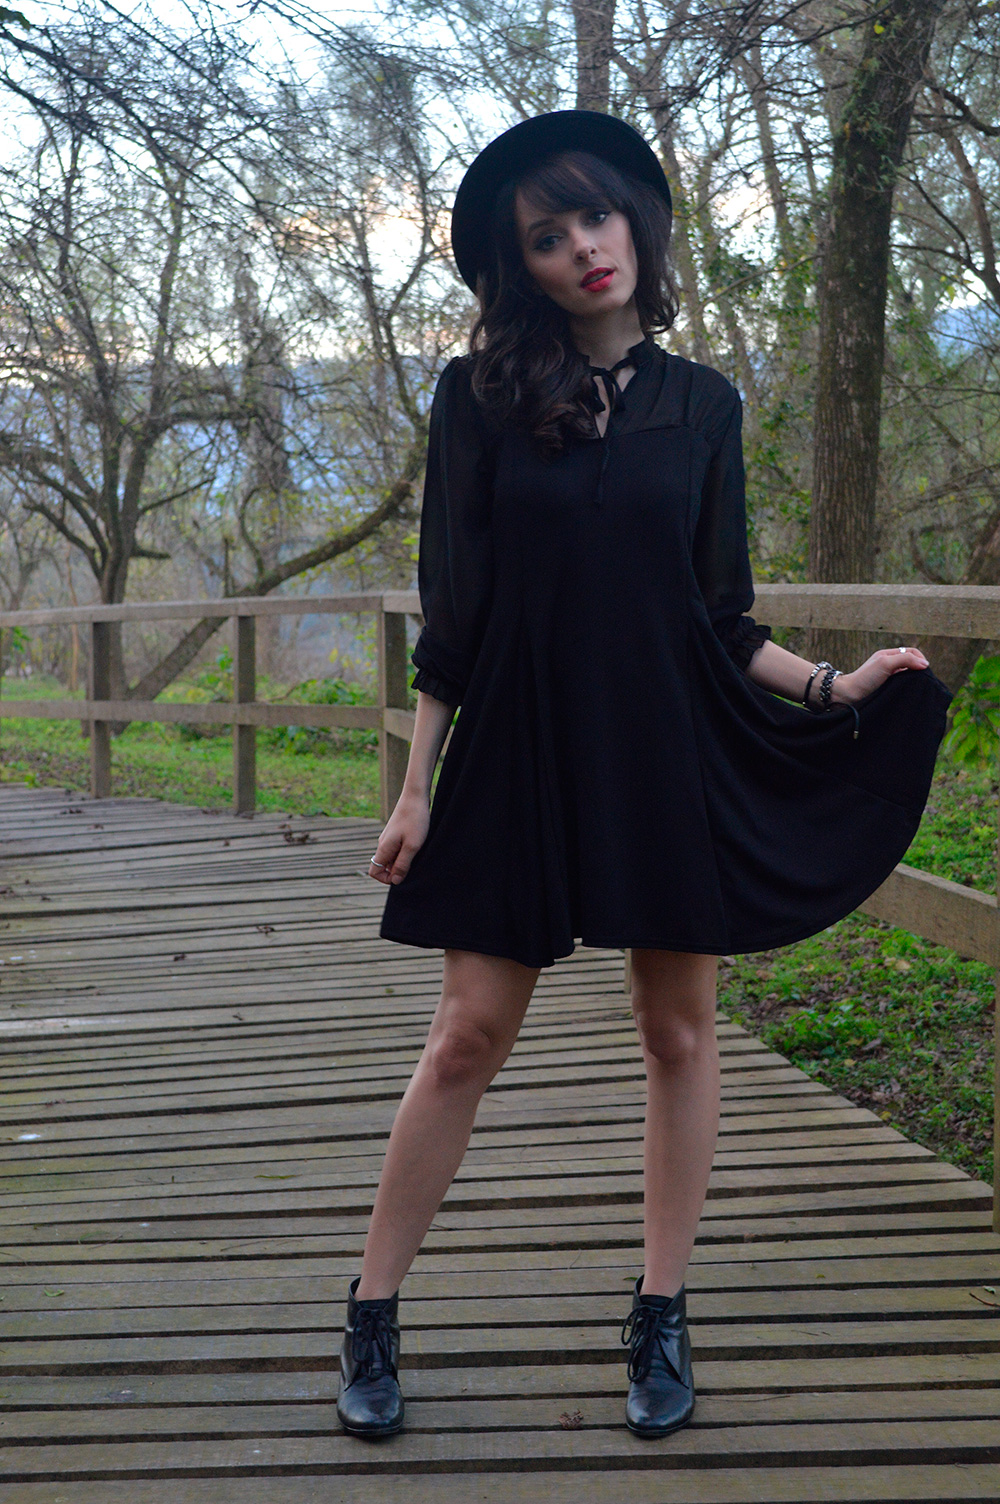 look-the-woods-gotica-suave-blog-ela-inspira-4